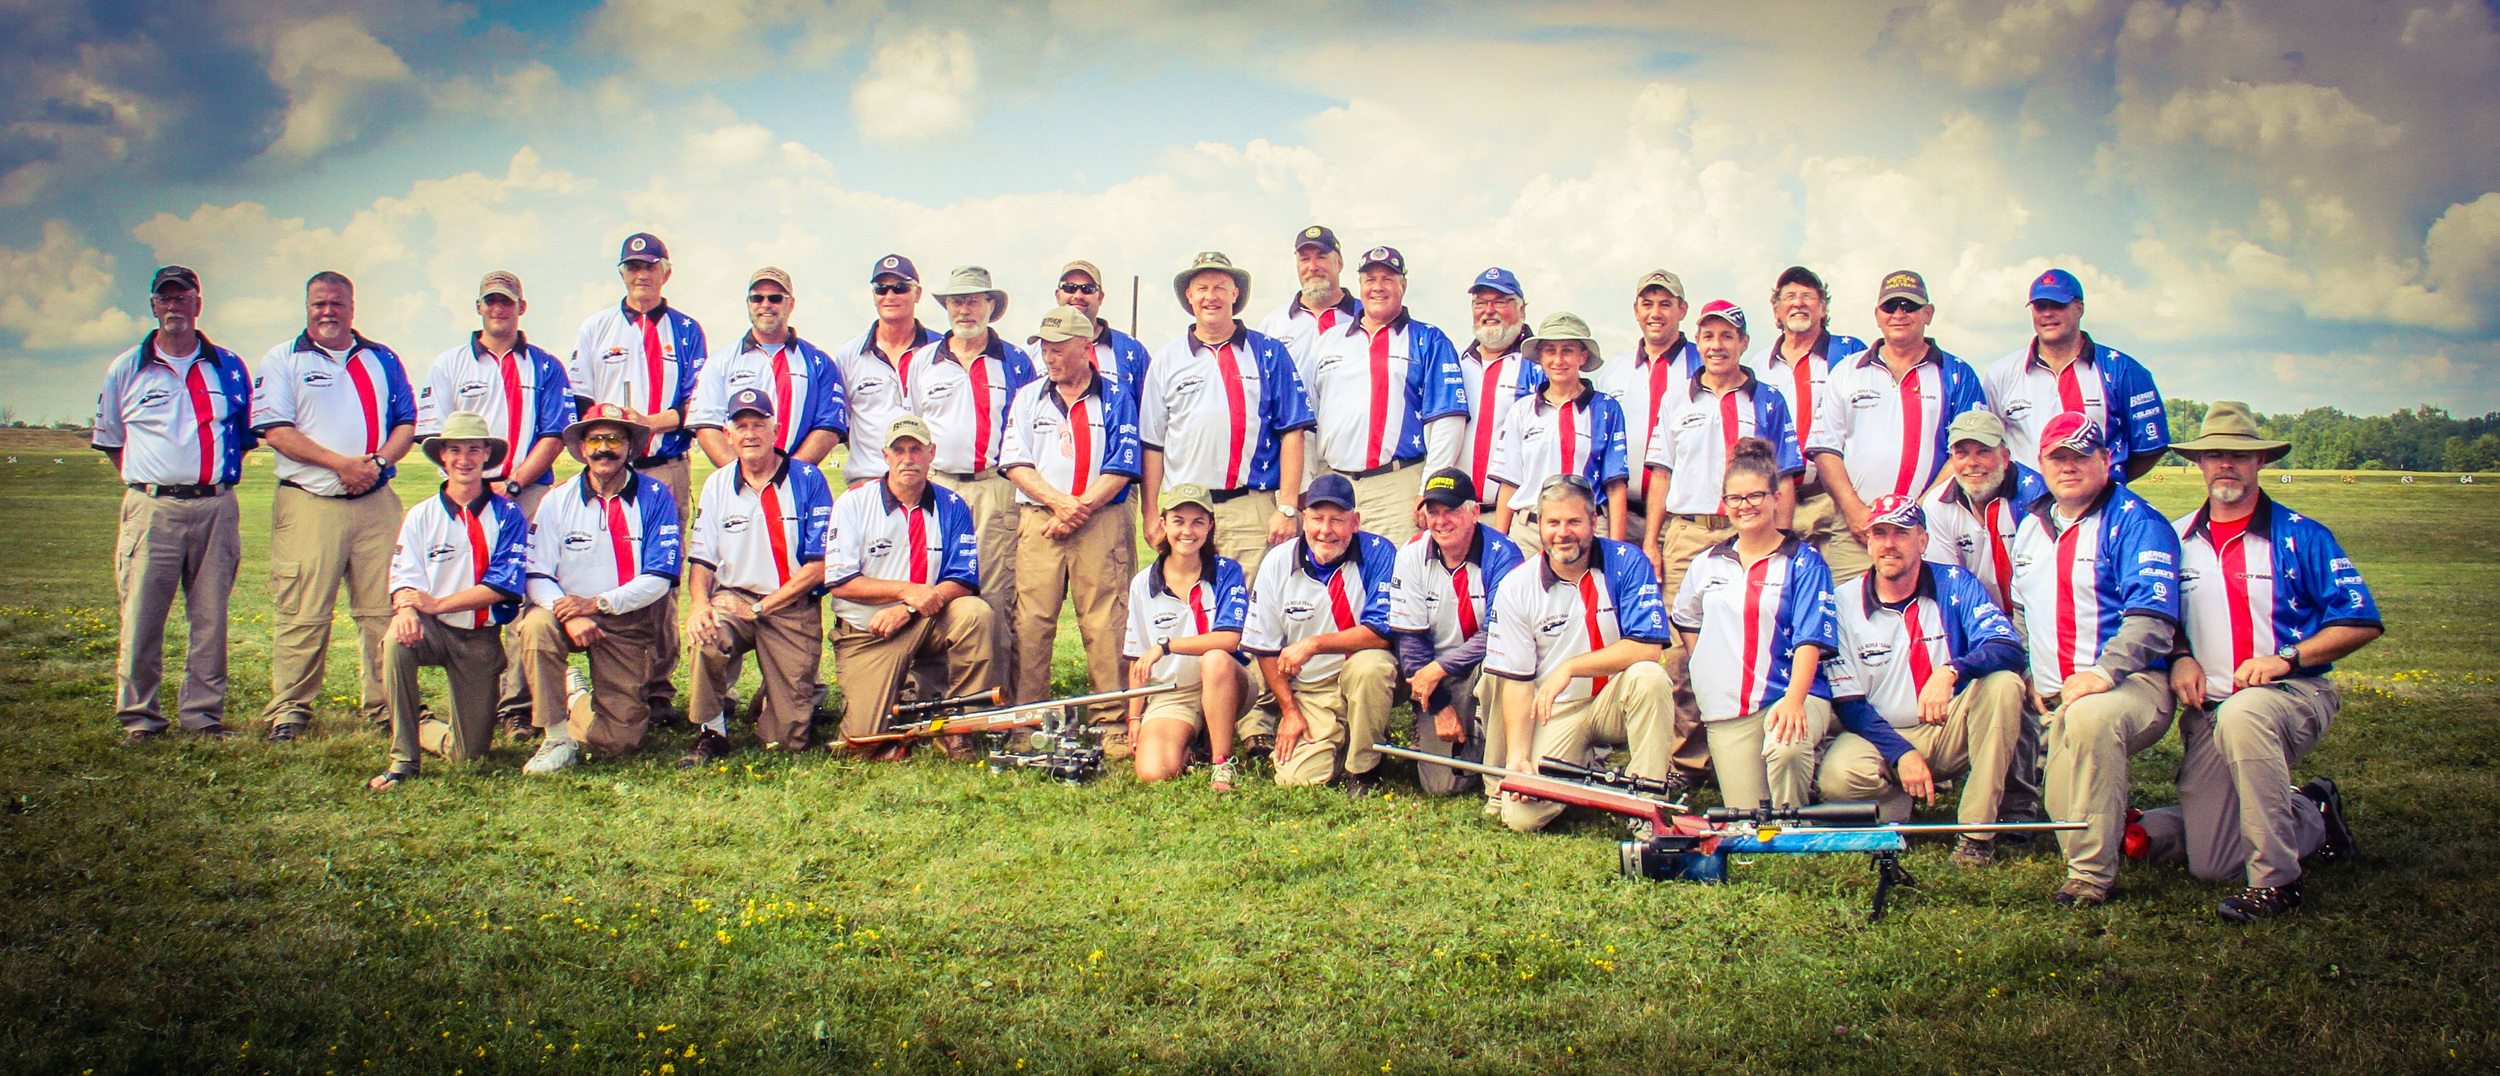 TEAM USA 2015 Canadian Nationals